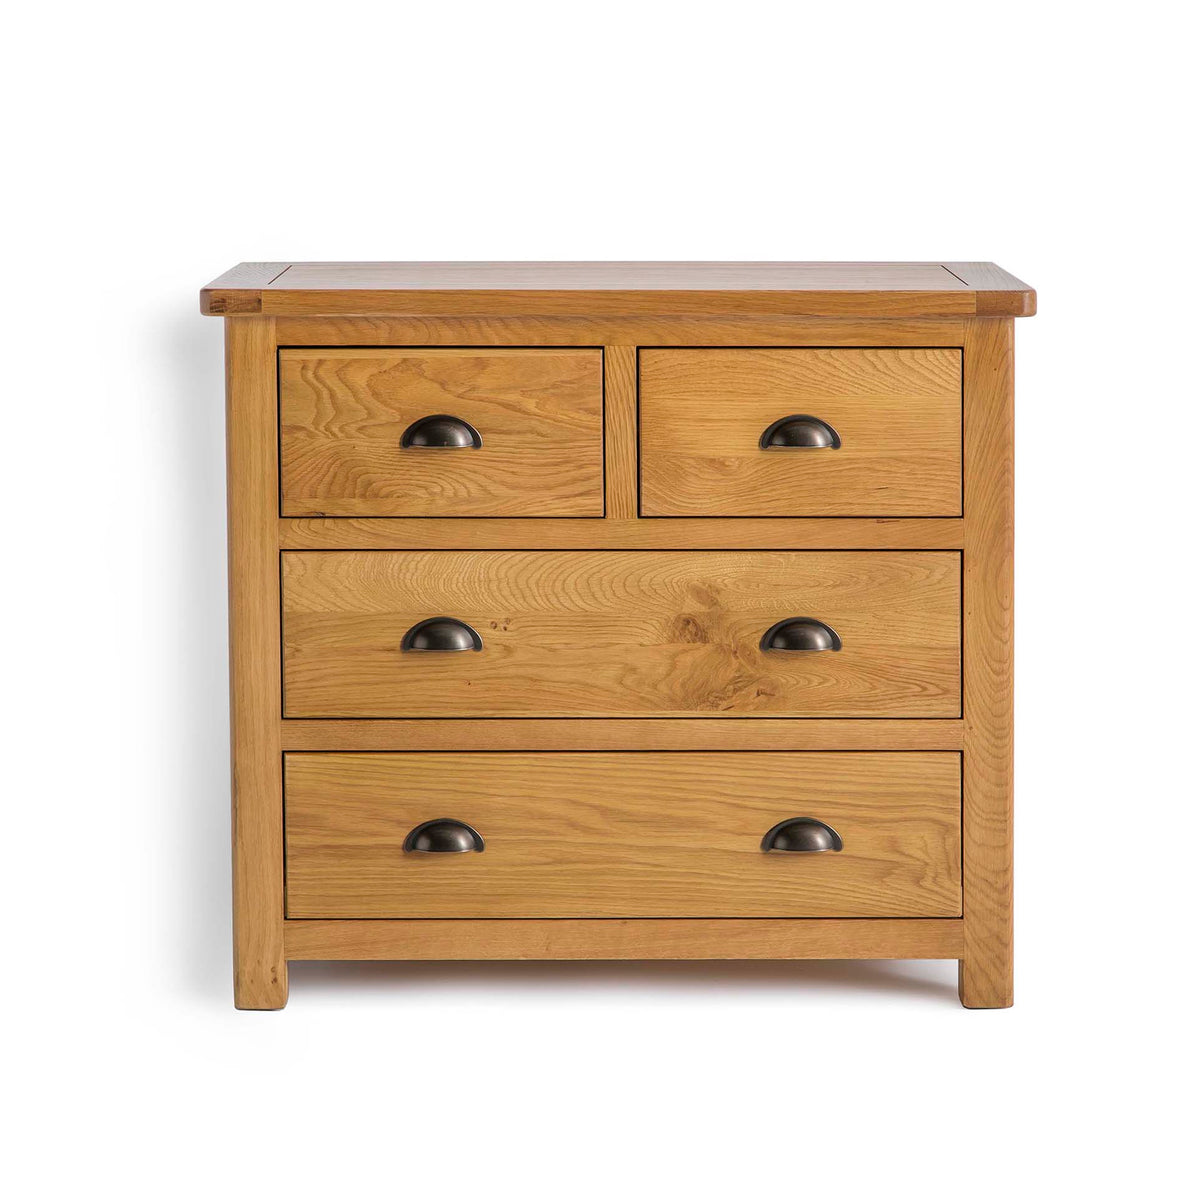 Roseland Oak 2 Over 2 Drawer Chest of Drawers by Roseland Furniture